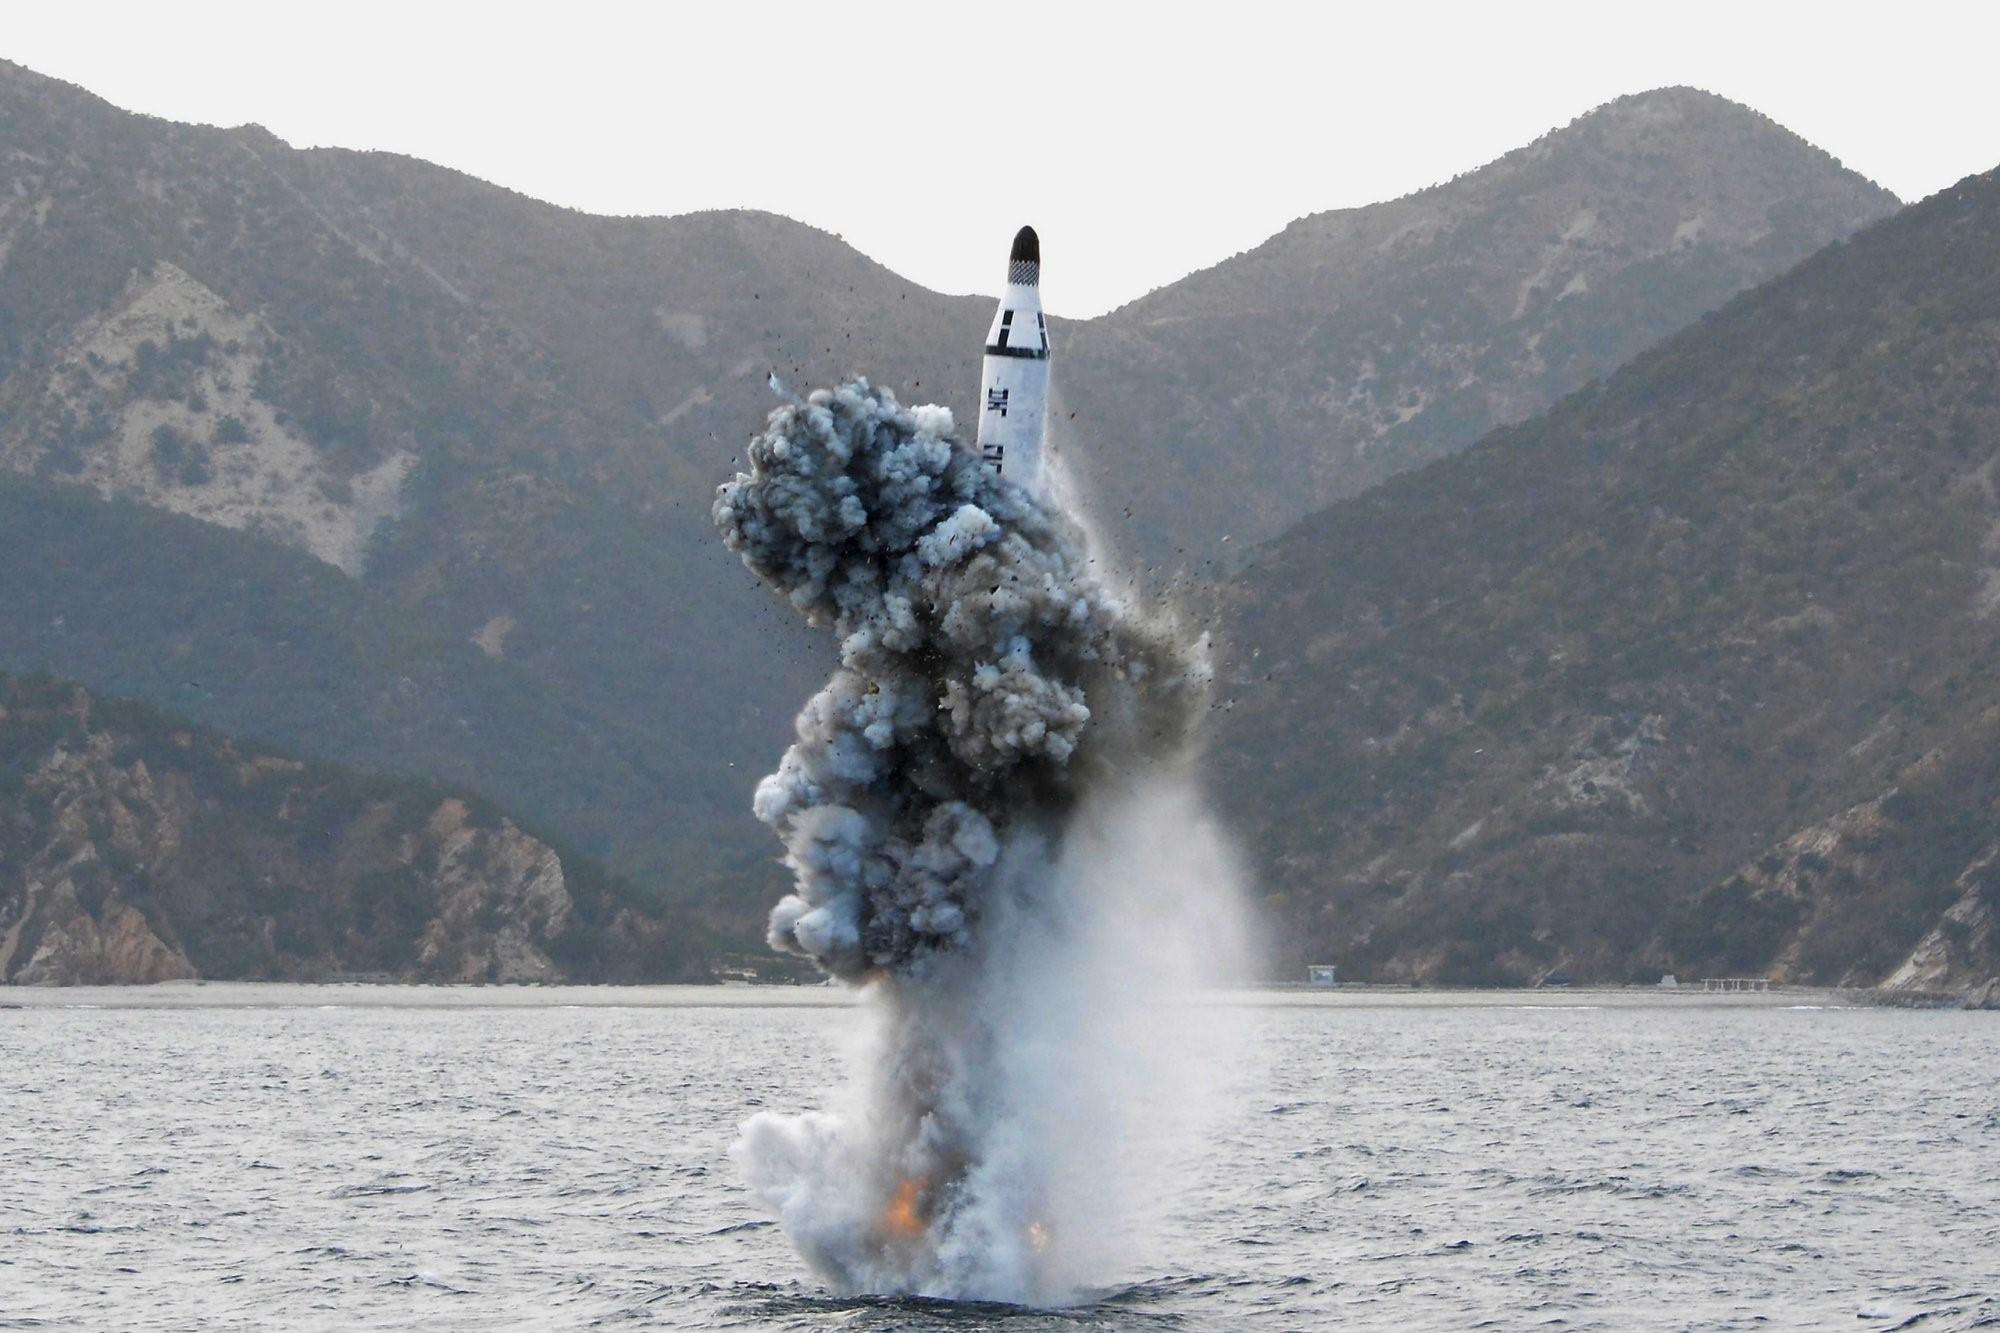 KN-11 missile submerged test launch conducted on August 8th, 2016.